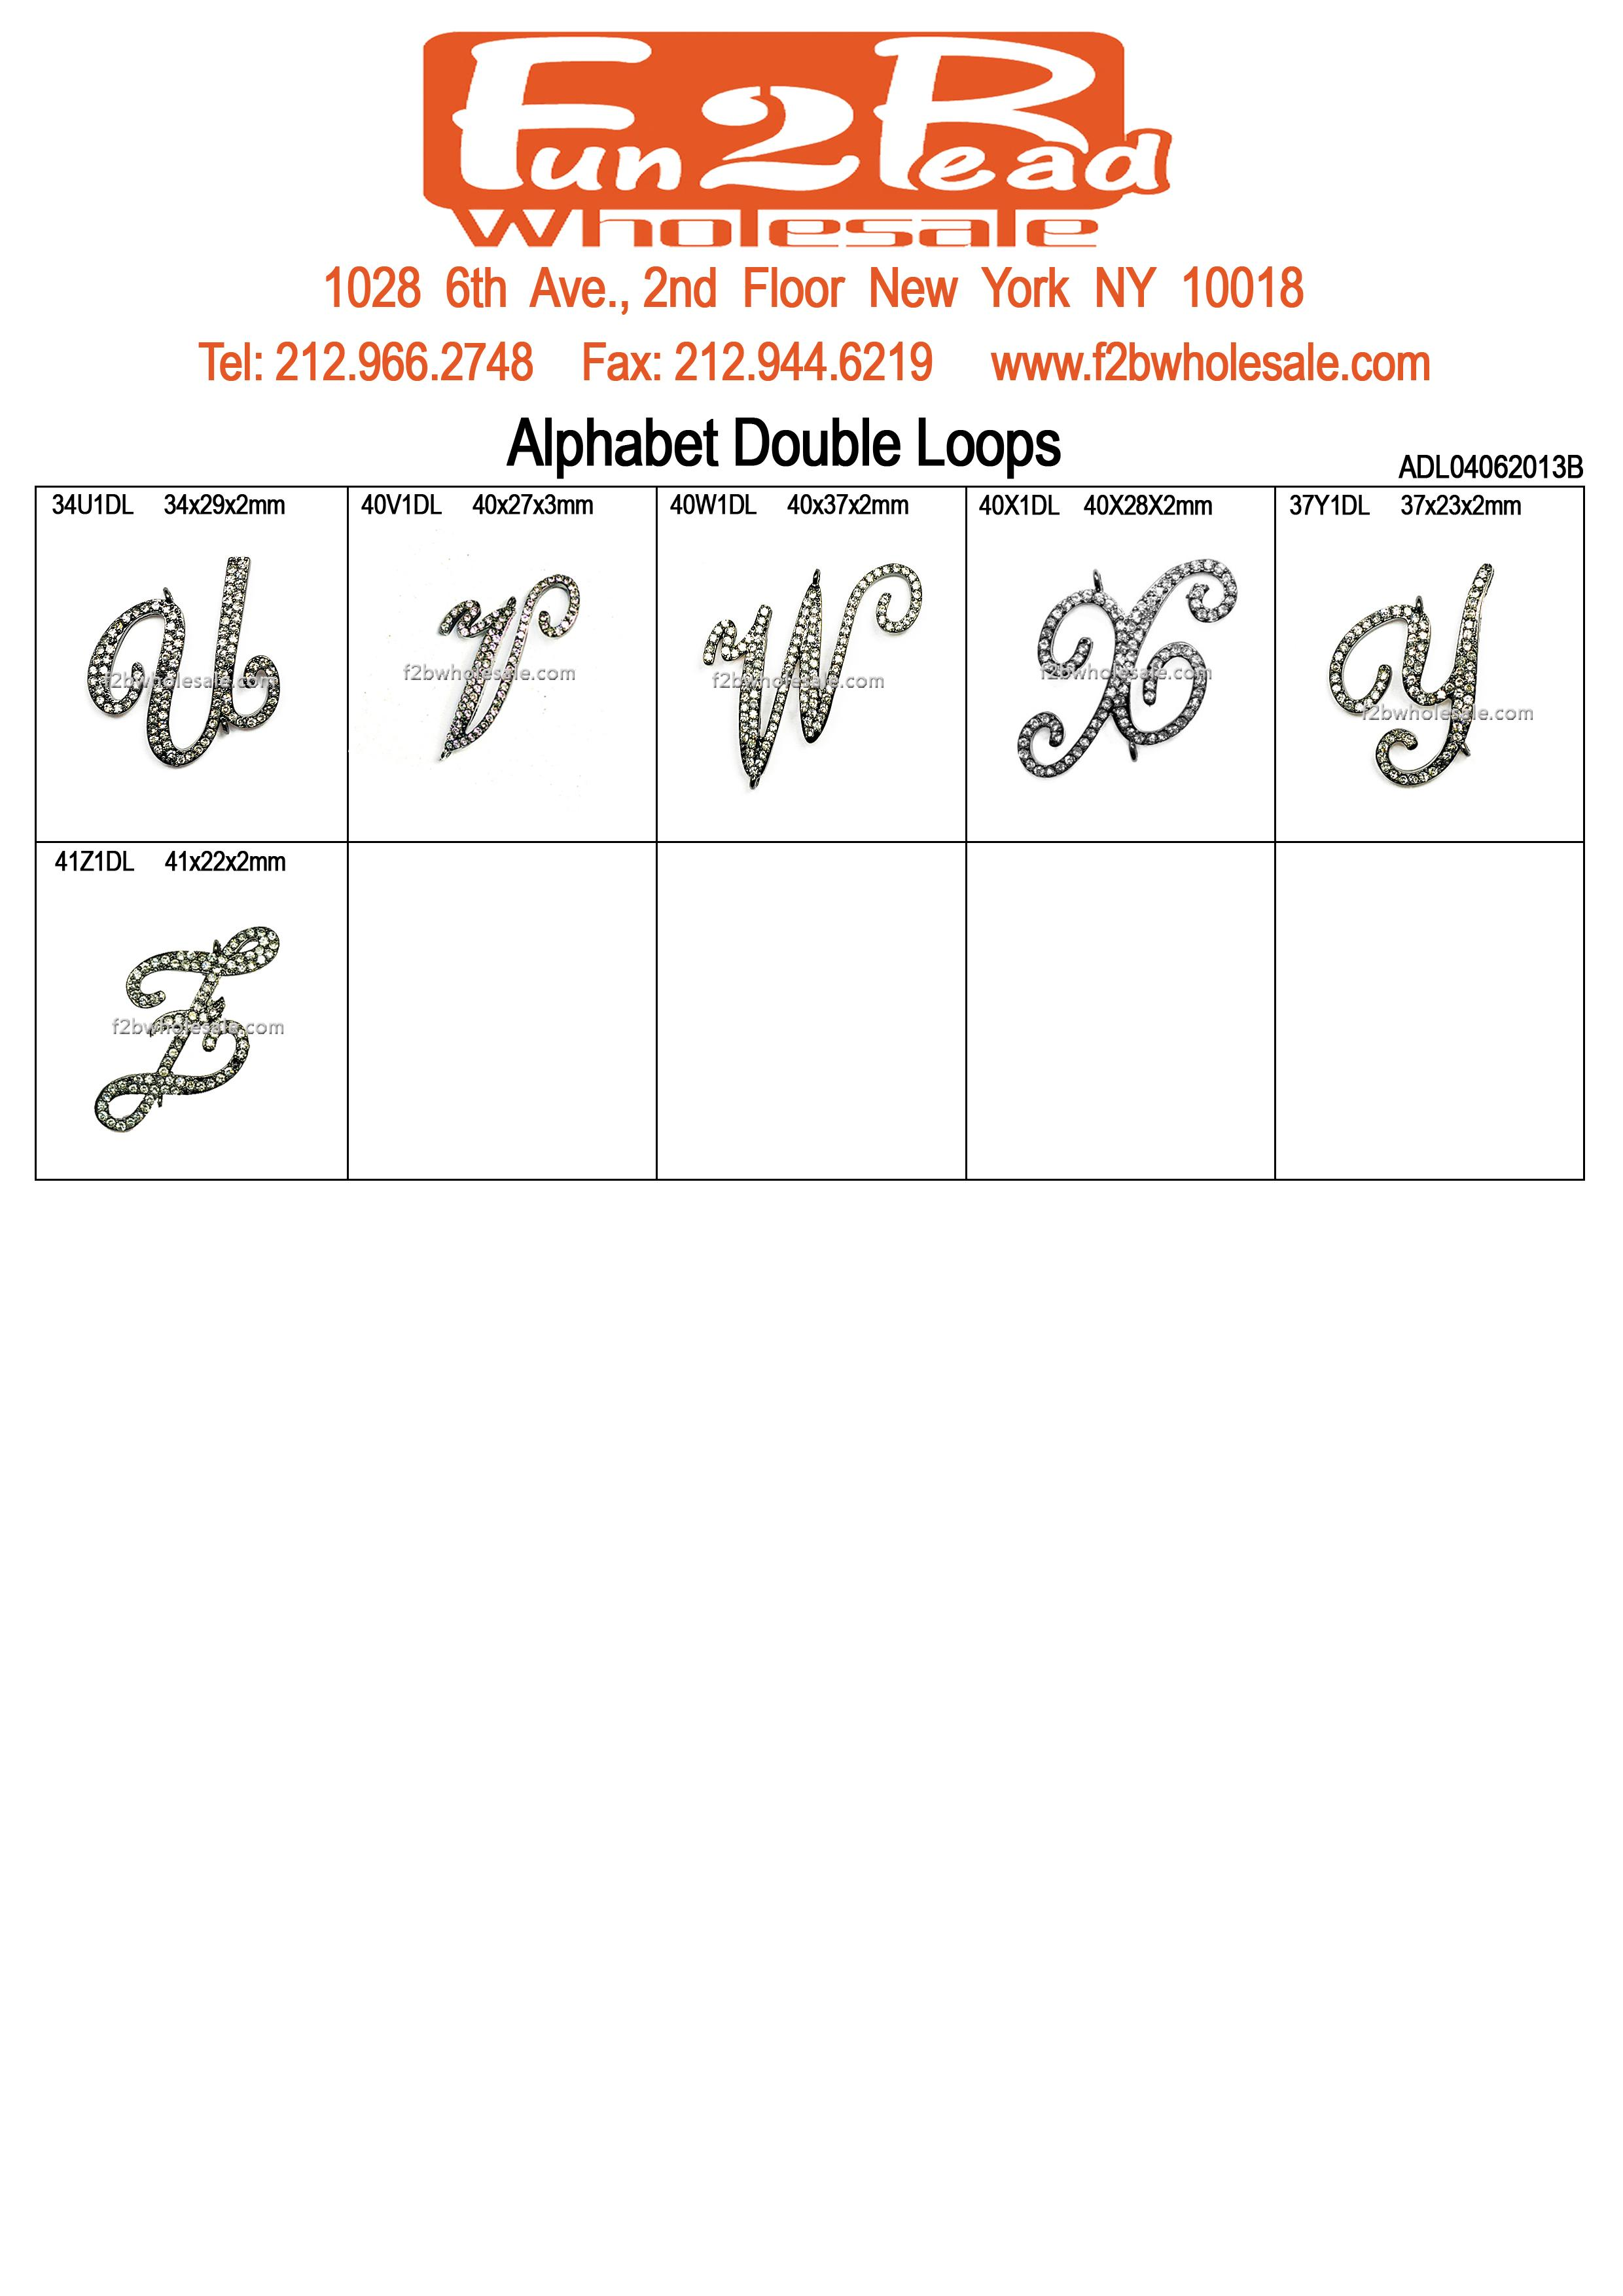 Alphabet Double Loops